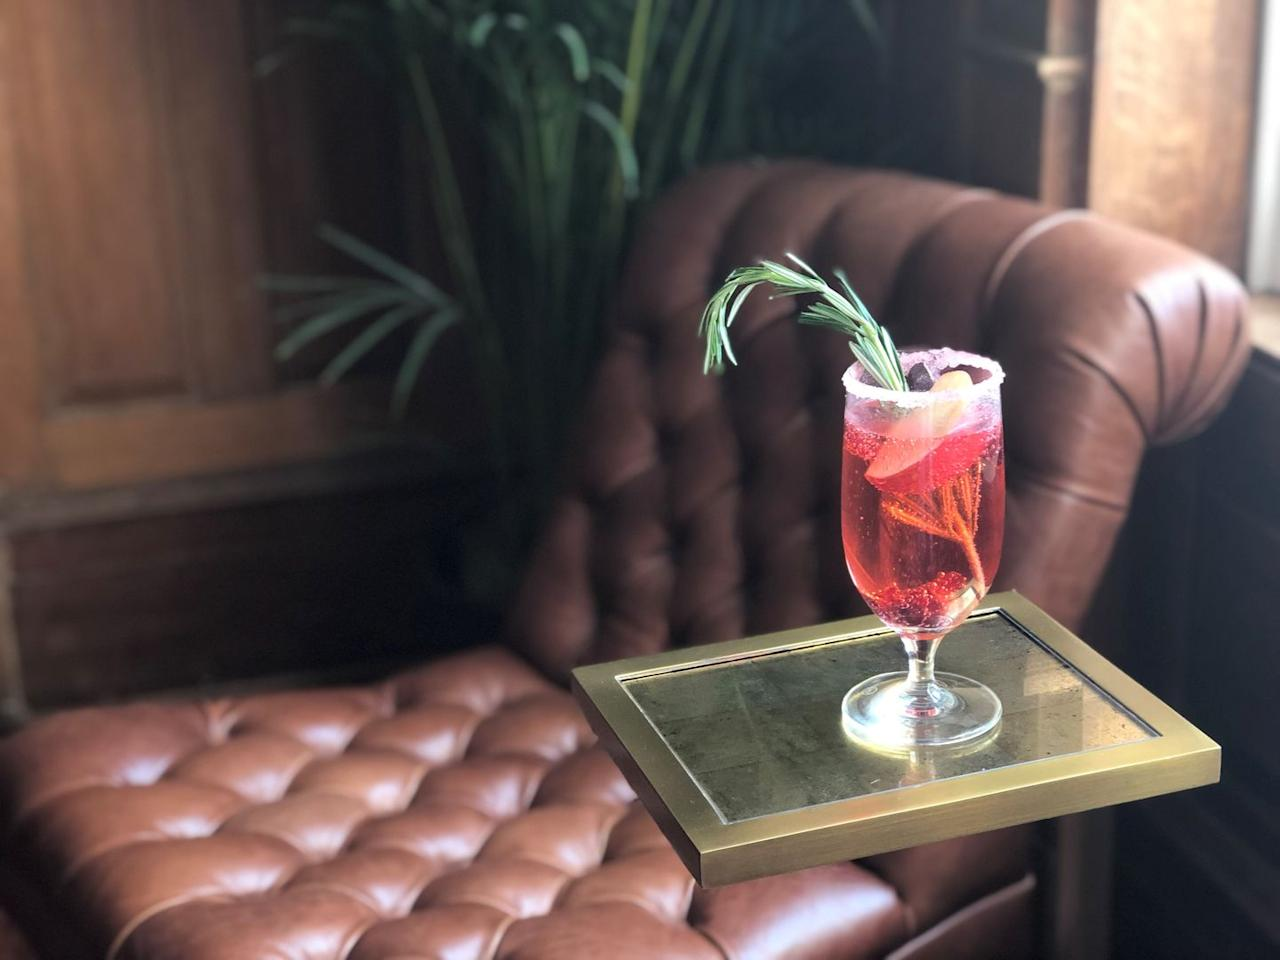 """<p><strong>Recipe:</strong><br>Apple juice<br>Cranberry juice<br>Sprite<br>Cranberries<br>Rosemary<br></p><p><strong>Directions:</strong></p><p>In a glass mix equal parts apple juice and cranberry juice. Add a dash of Sprite. Garnish with cranberries and a sprig of rosemary.<br></p><p><em>From </em><a href=""""https://www.seedlipdrinks.com/"""" target=""""_blank""""></a><em><a href=""""https://www.jekyllclub.com/"""" target=""""_blank"""">Jekyll Island Club Resort</a>, Jekyll Island, Georgia</em></p>"""